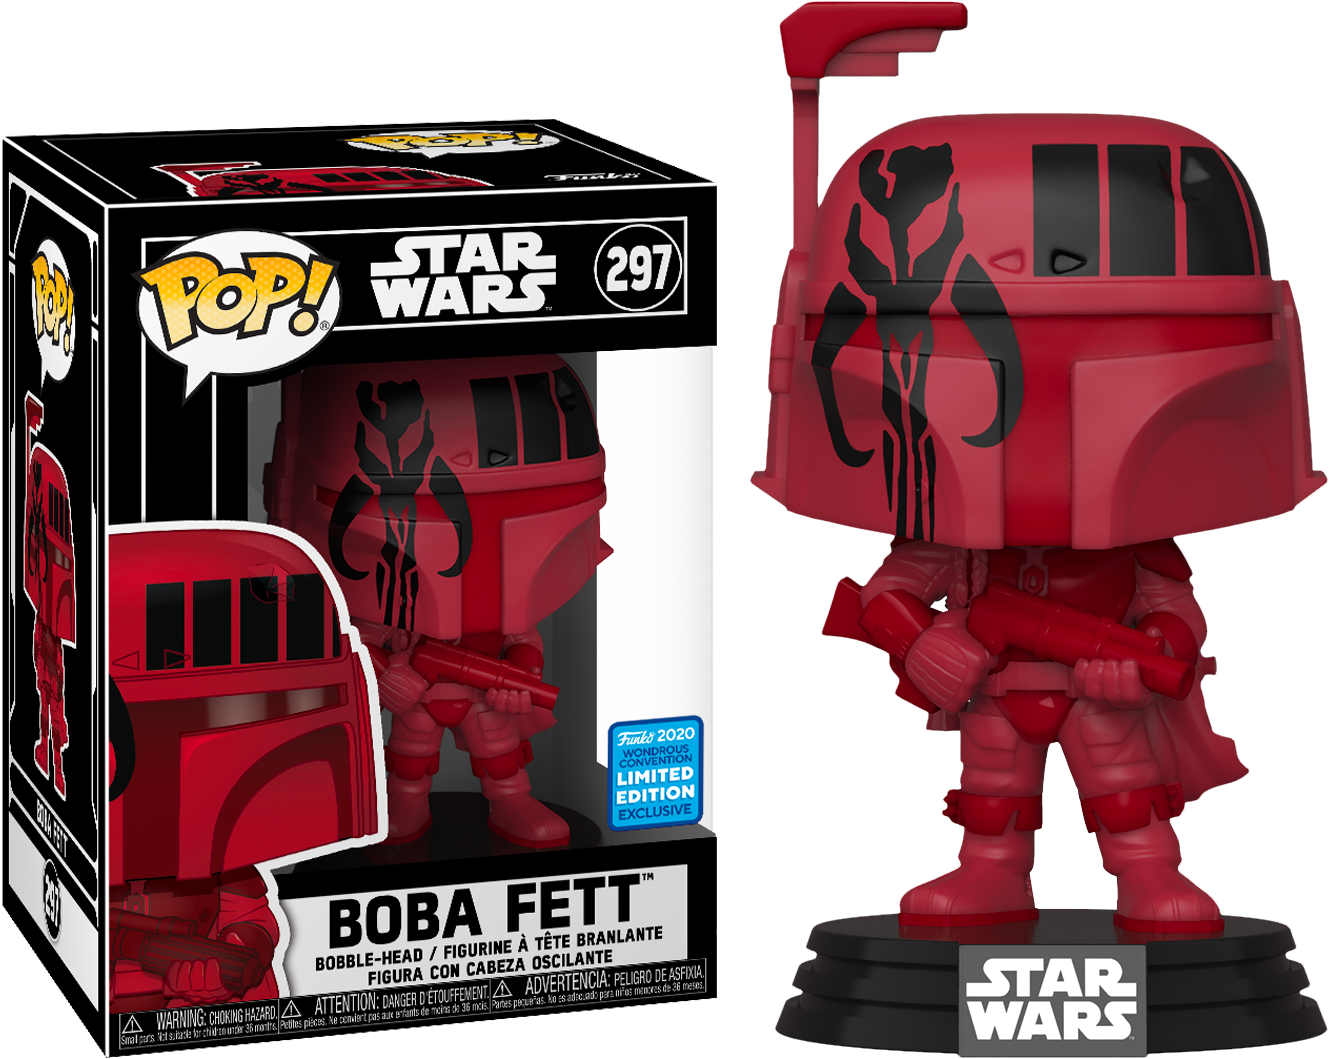 ​Star Wars - Boba Fett with Mandalorian Symbol Pop! Vinyl Figure in Pop! Protector (2020 Wondrous Convention Exclusive)